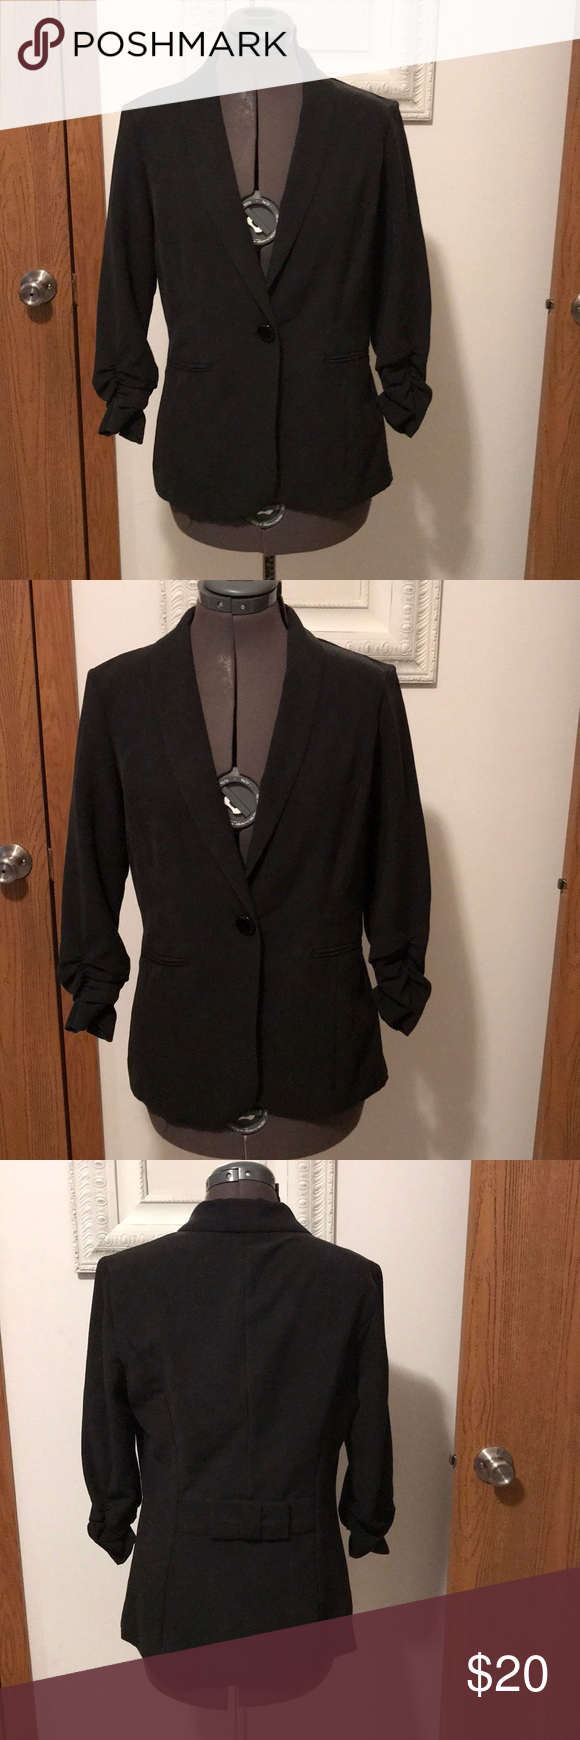 Stood Black Dress Jacket With Bow Accent Black Dress Jacket Jacket Dress Cute Black Dress [ 1740 x 580 Pixel ]